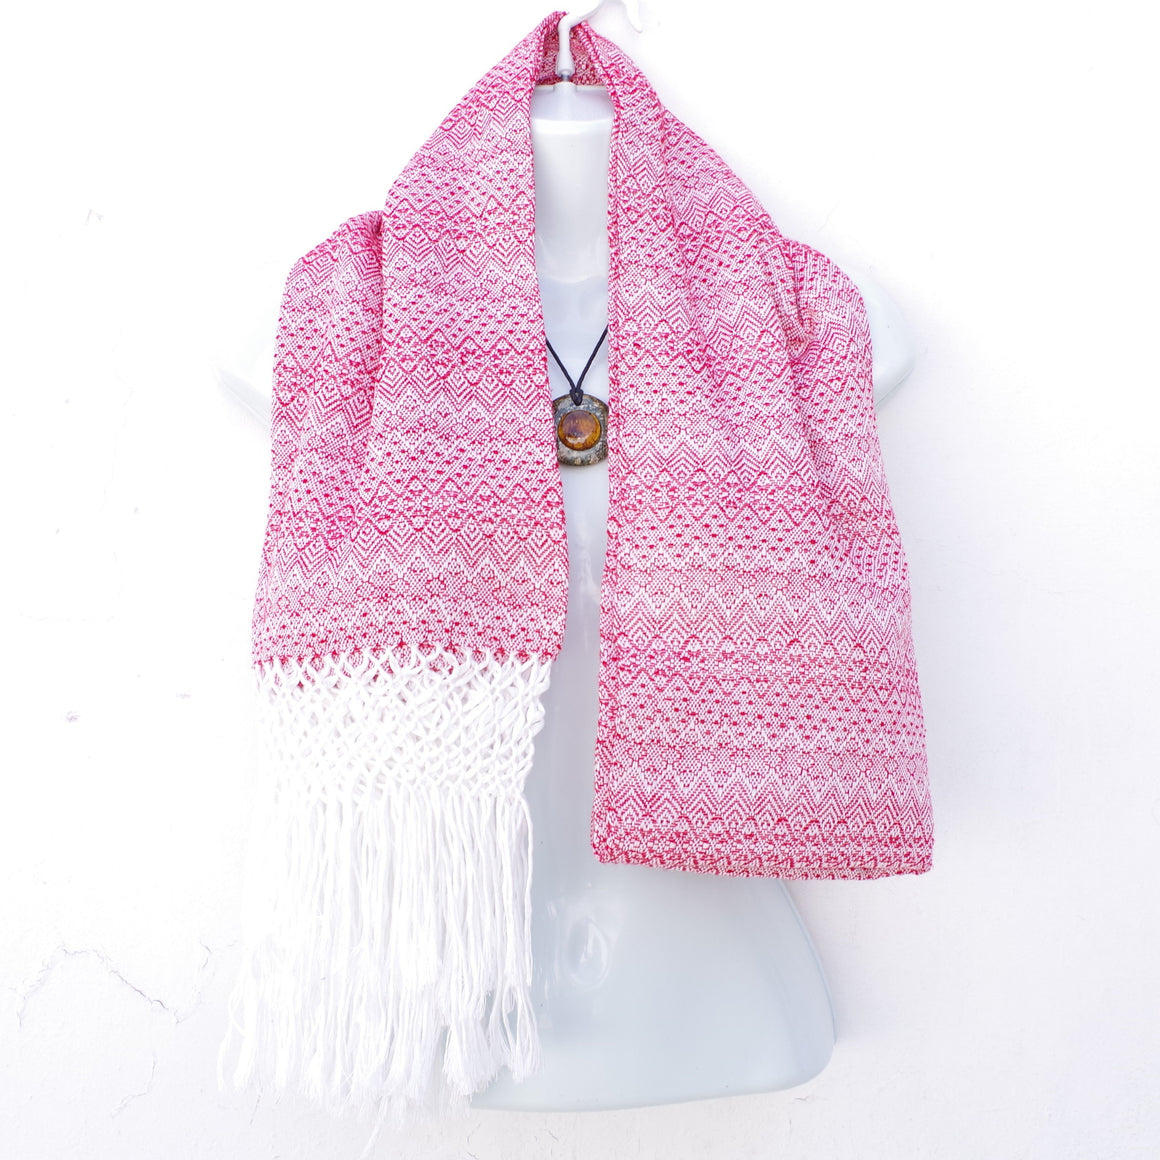 Red and White Mexican Rebozo Shawl with Fringes Embroidered with Cotton and Yarn